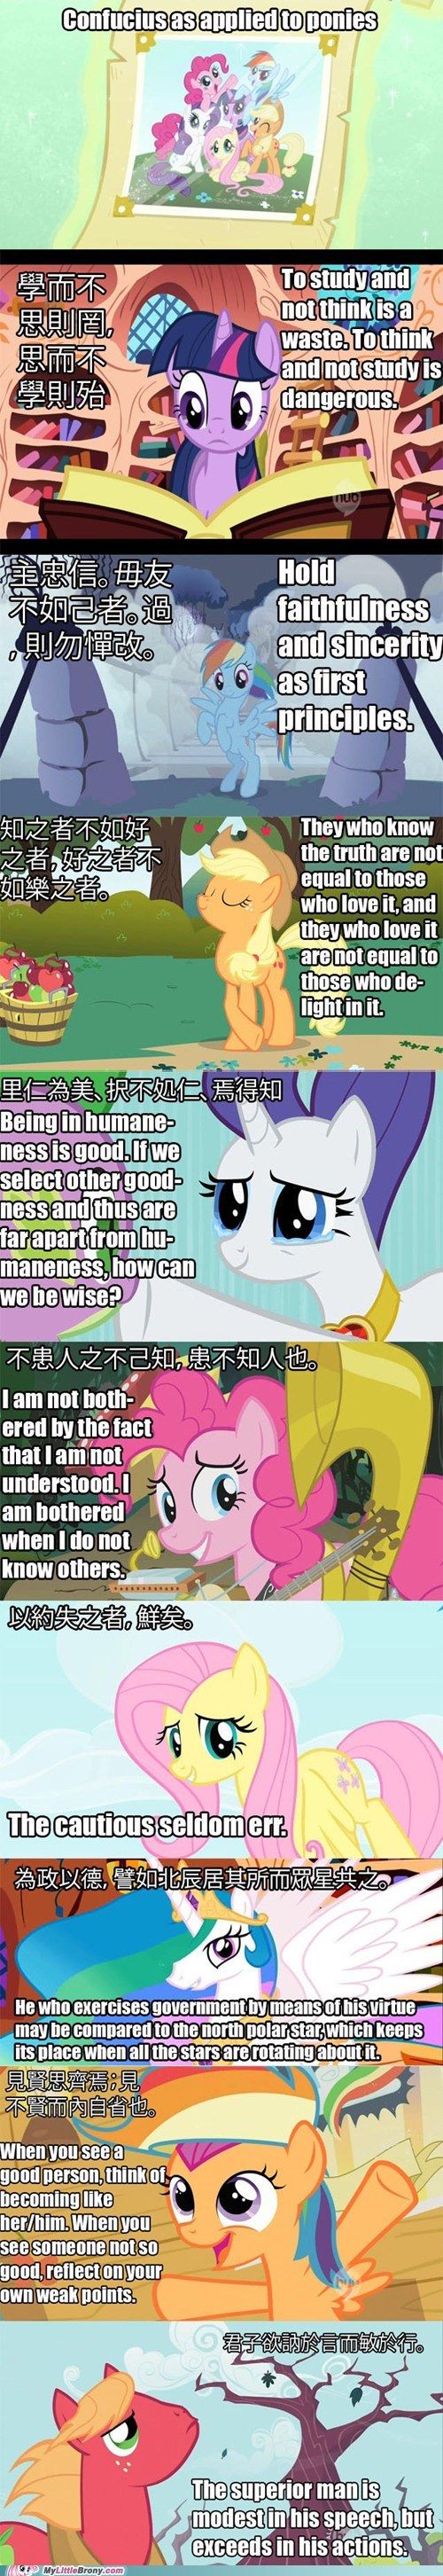 Funny memes in which Confucius is overlayed with pony cartoon screen grabs.